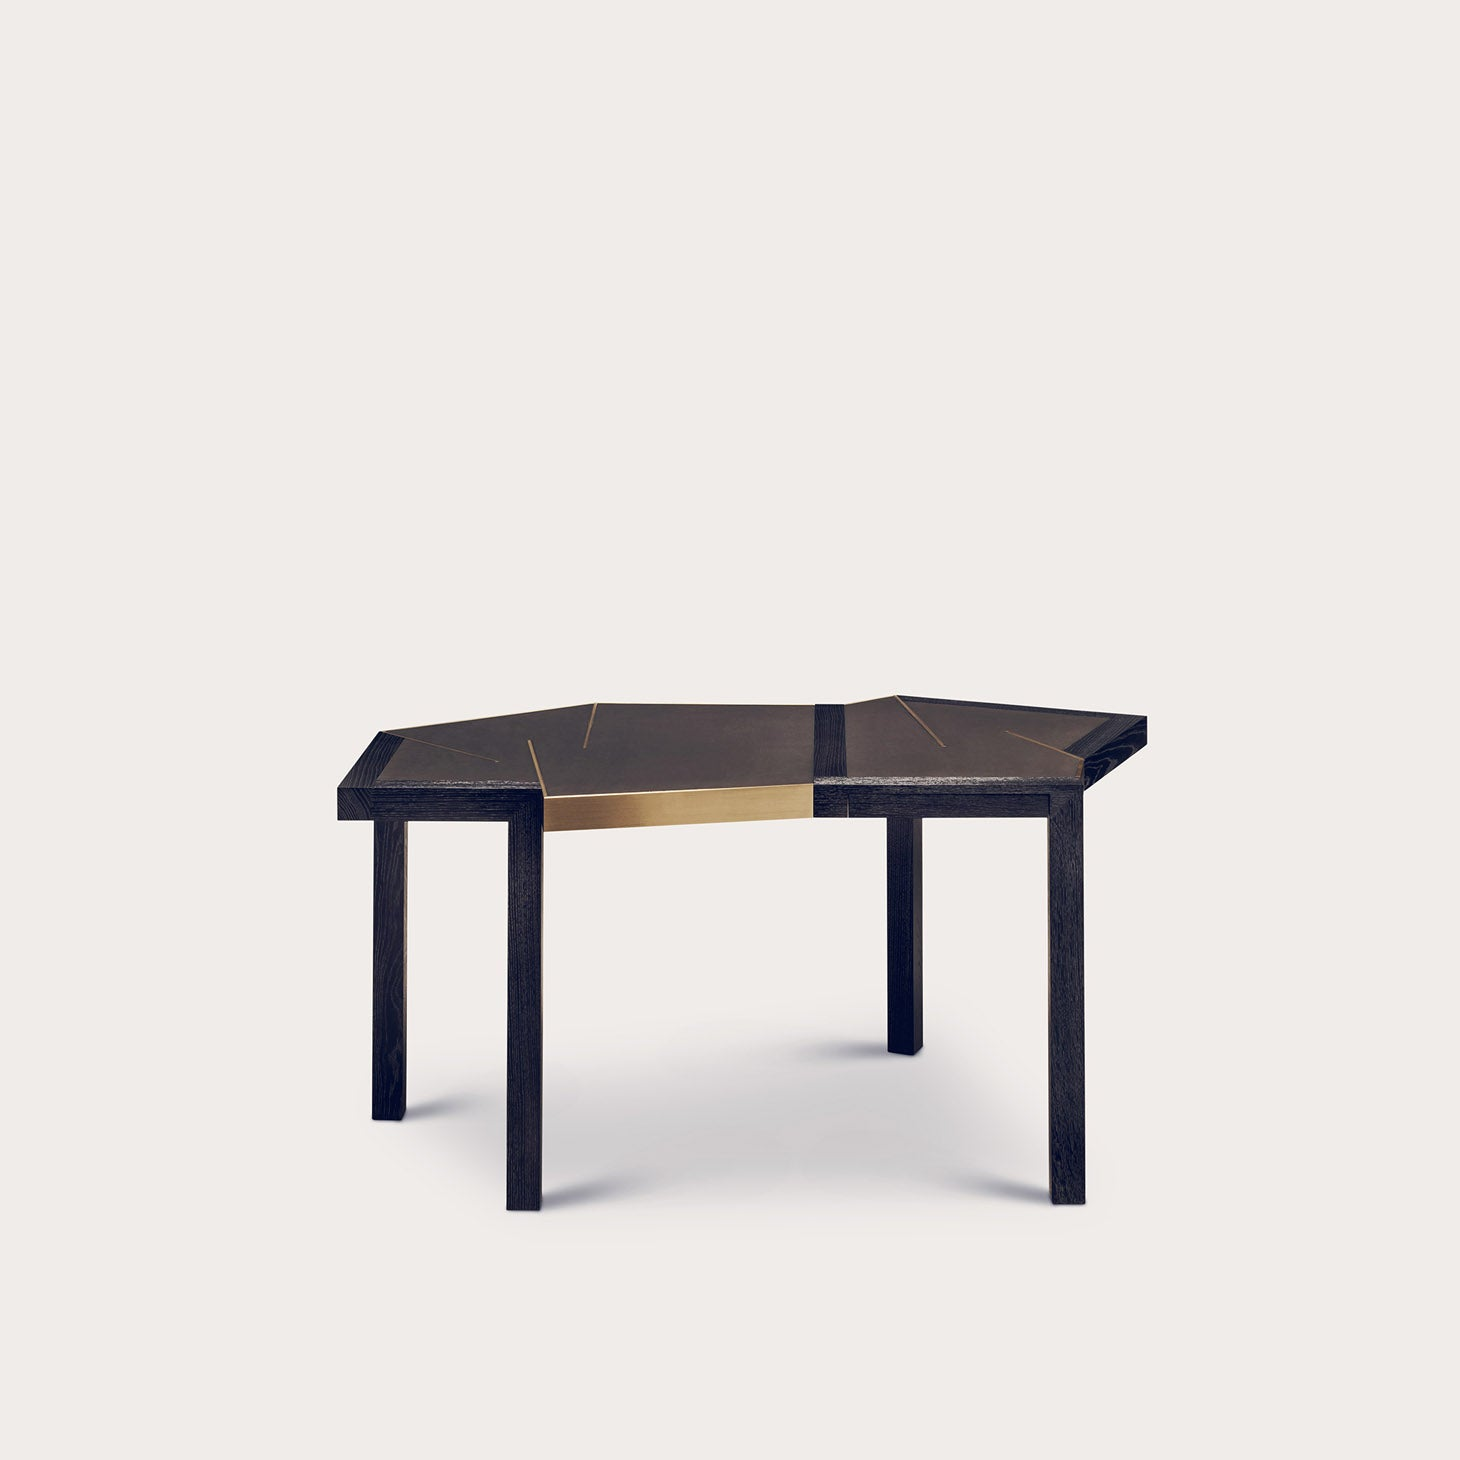 DINANT Desk Tables Bruno Moinard Designer Furniture Sku: 773-230-10018